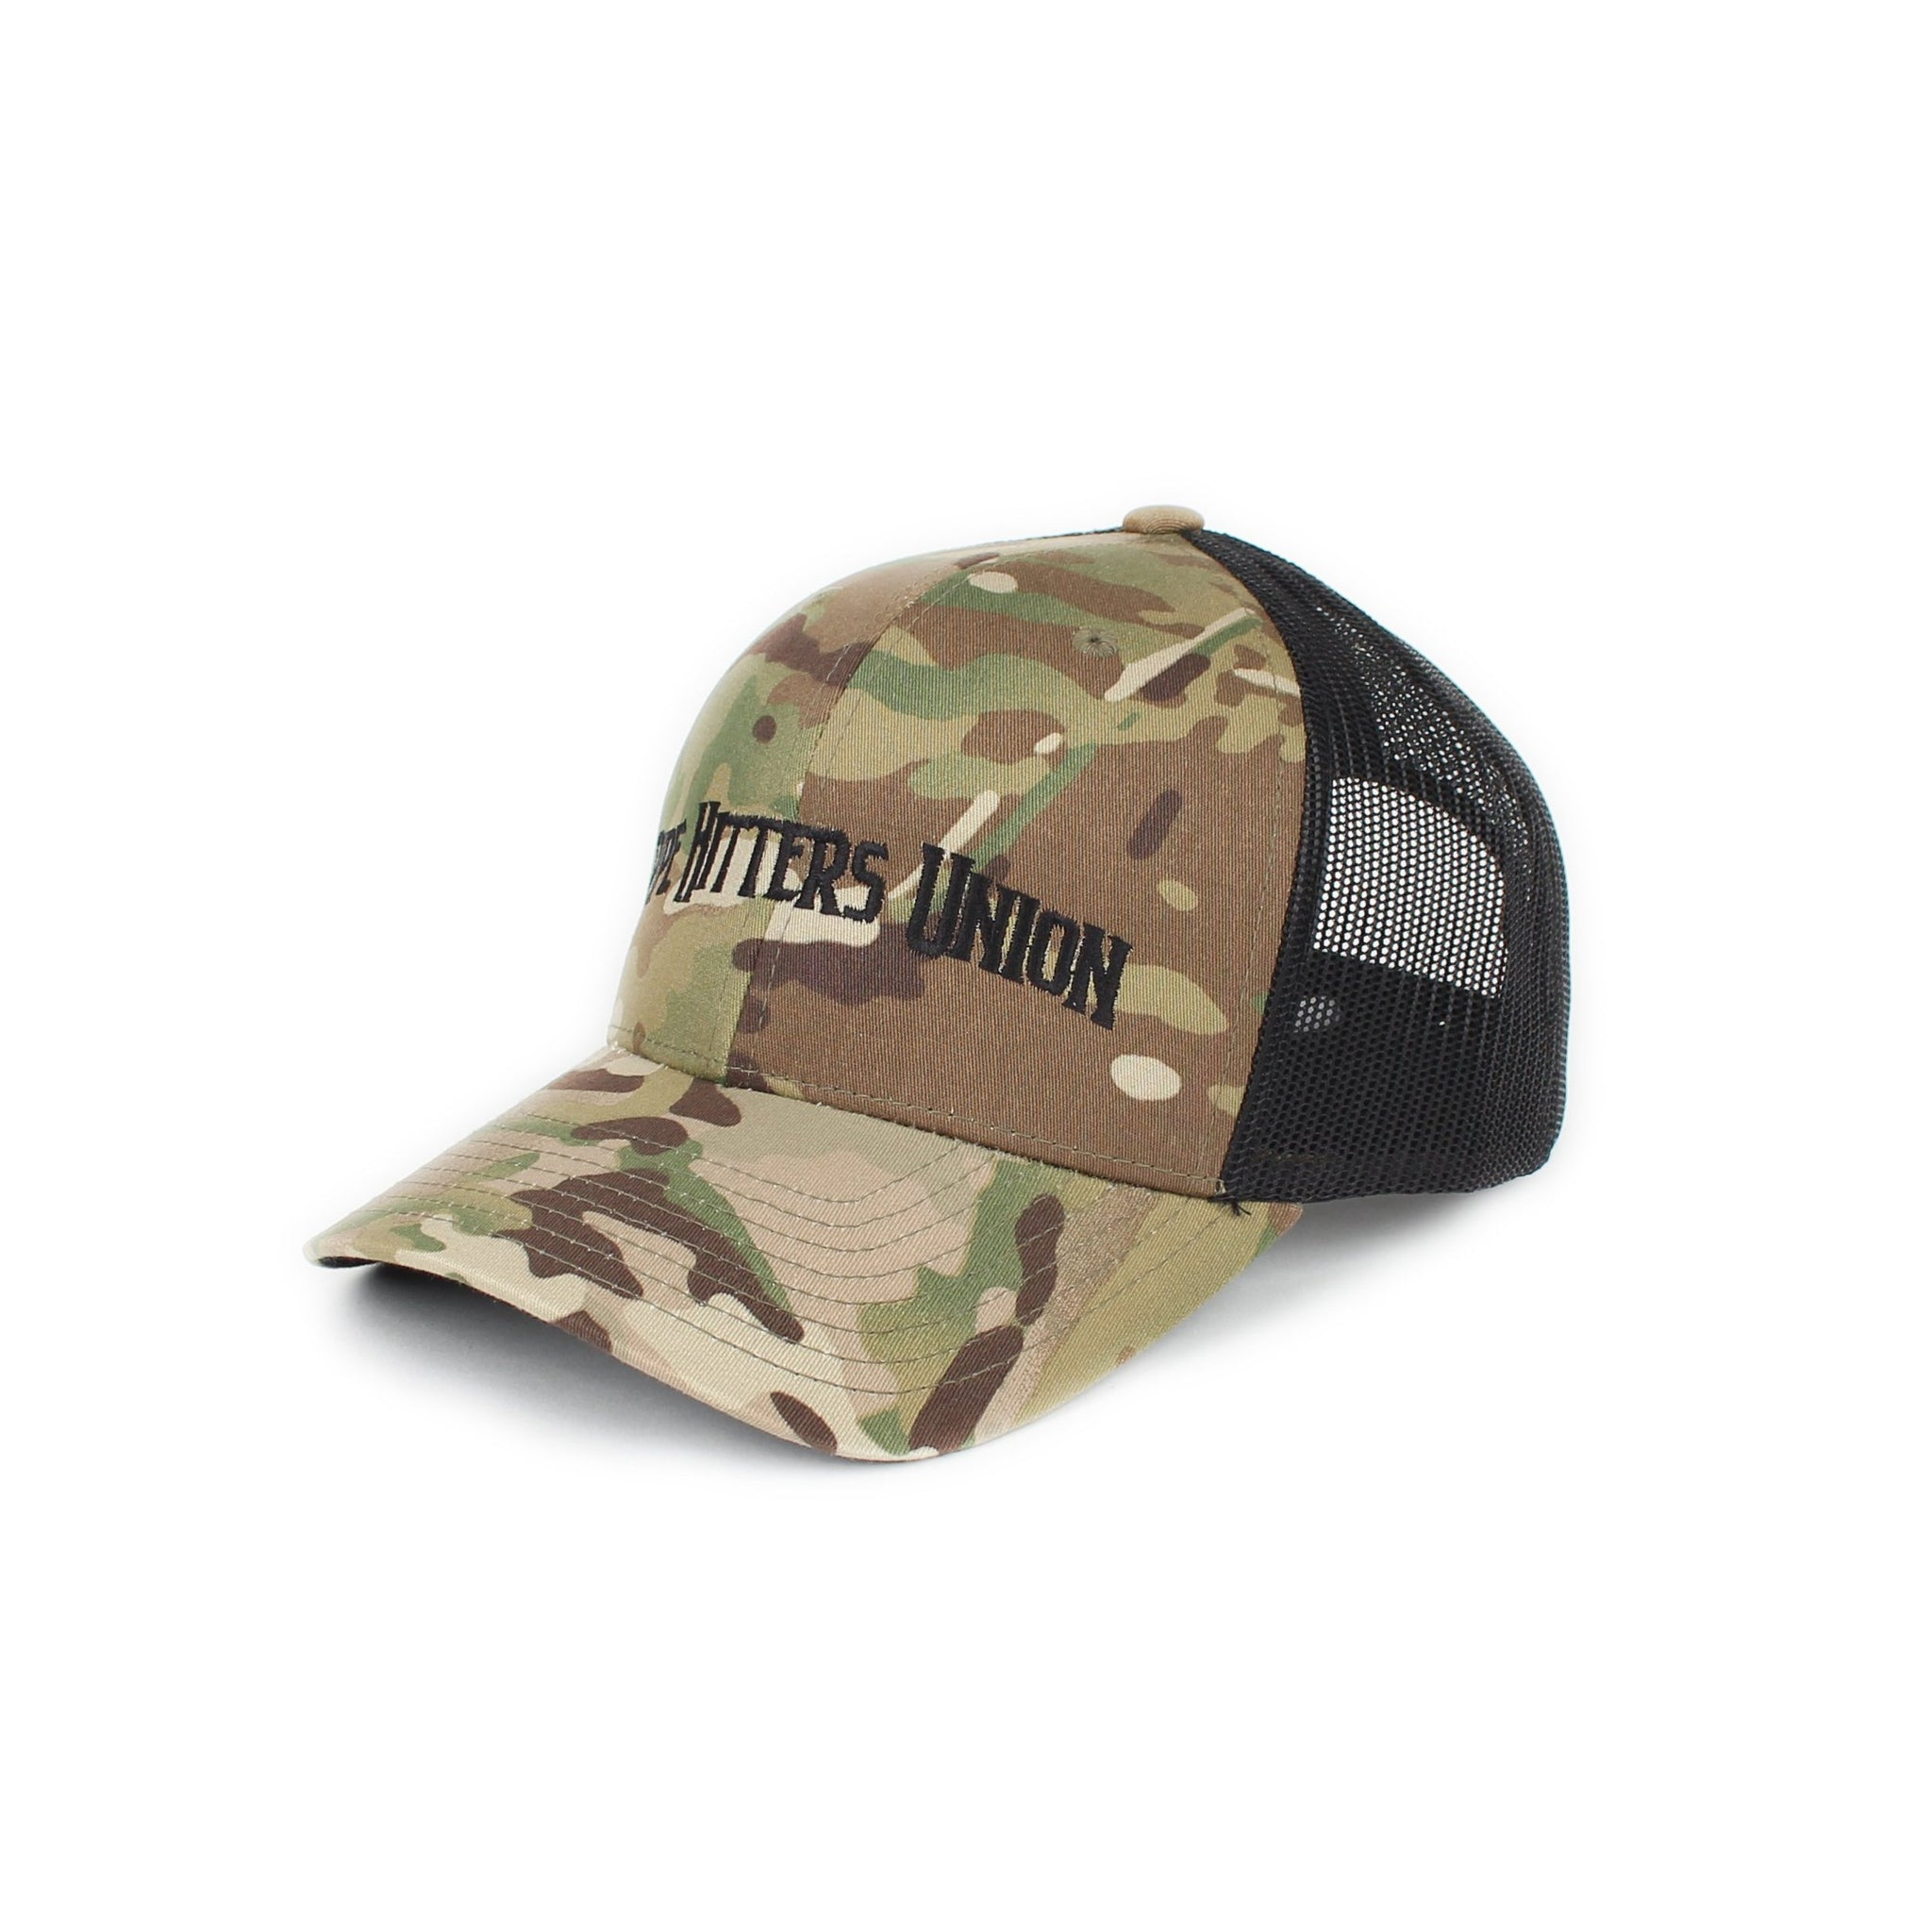 Pipe Hitters Union Trucker - GreenMultiCam/Black - Hats - Pipe Hitters Union